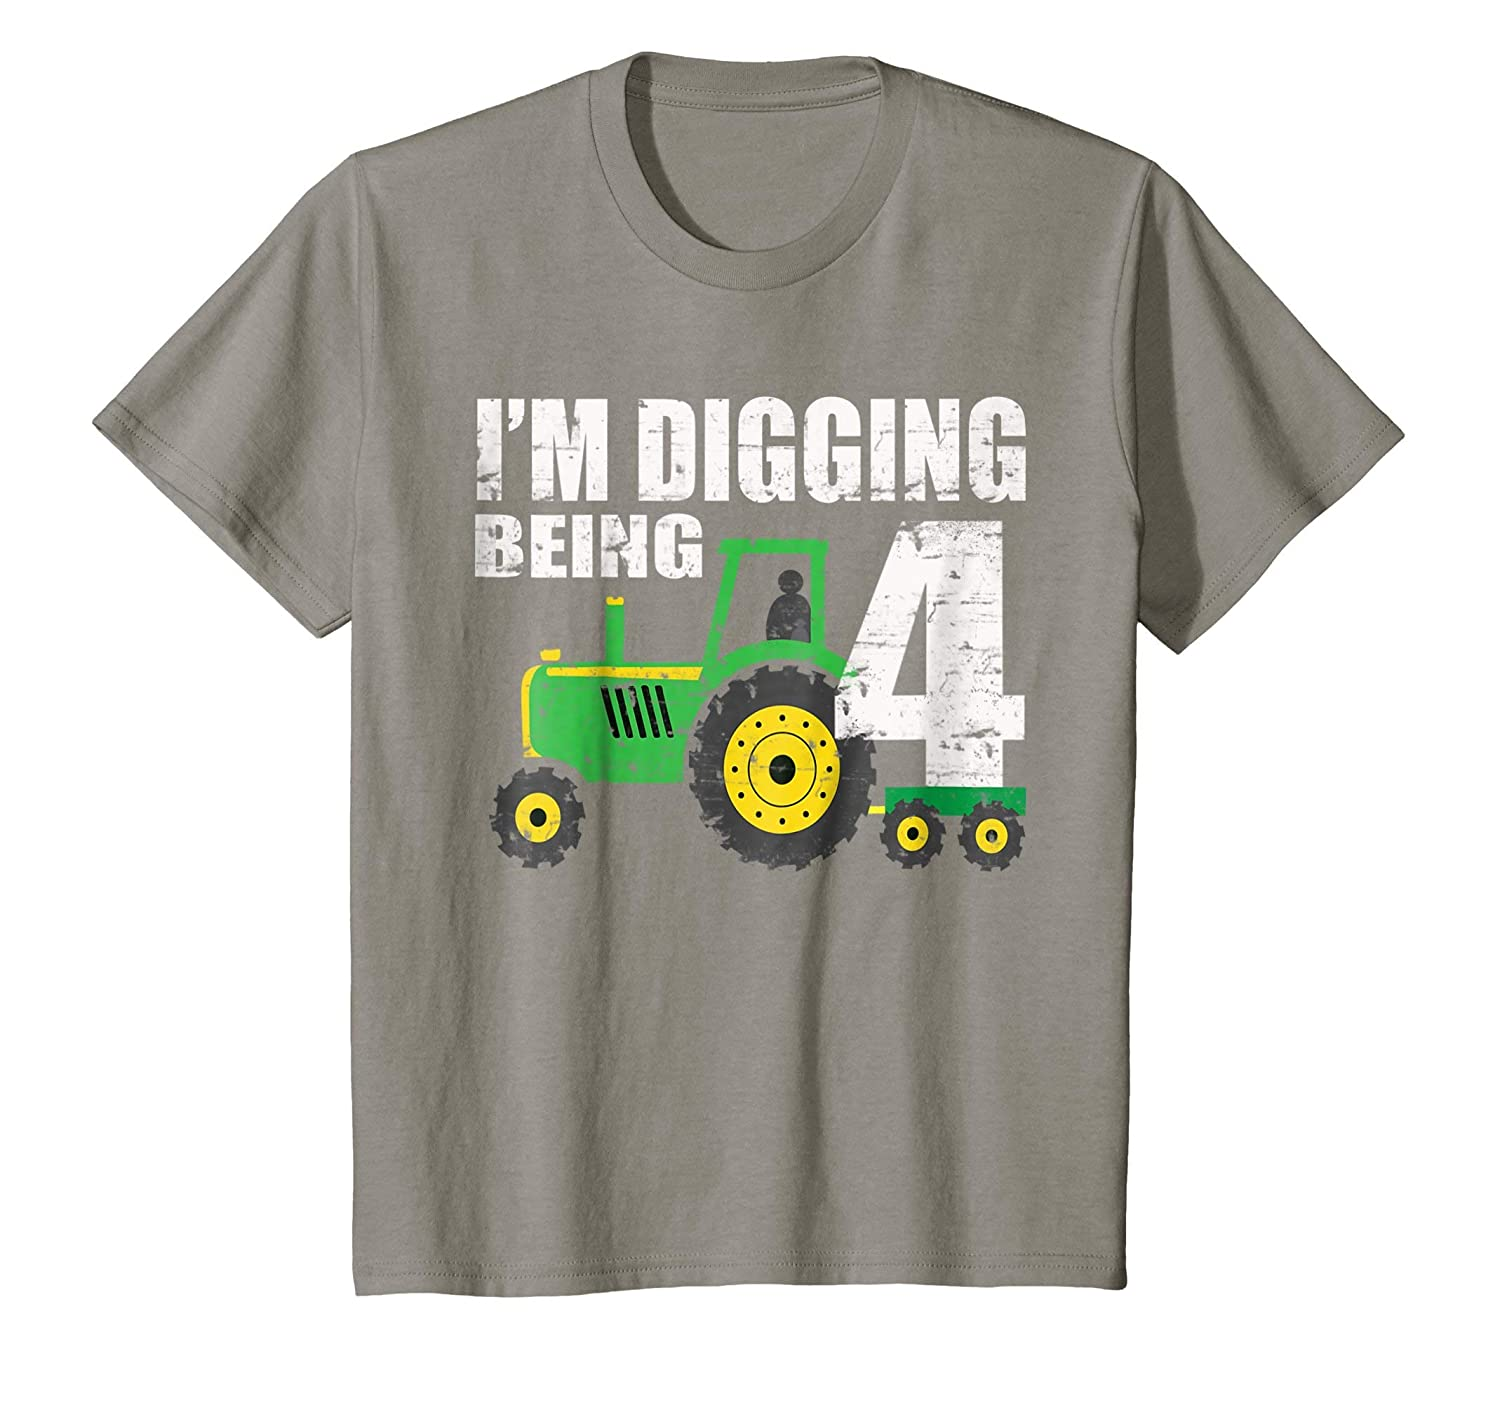 58d4d6382 Kids 4 Year Old Tractor Birthday Shirt 4th Birthday Shirt Boy: Amazon.ca:  Clothing & Accessories